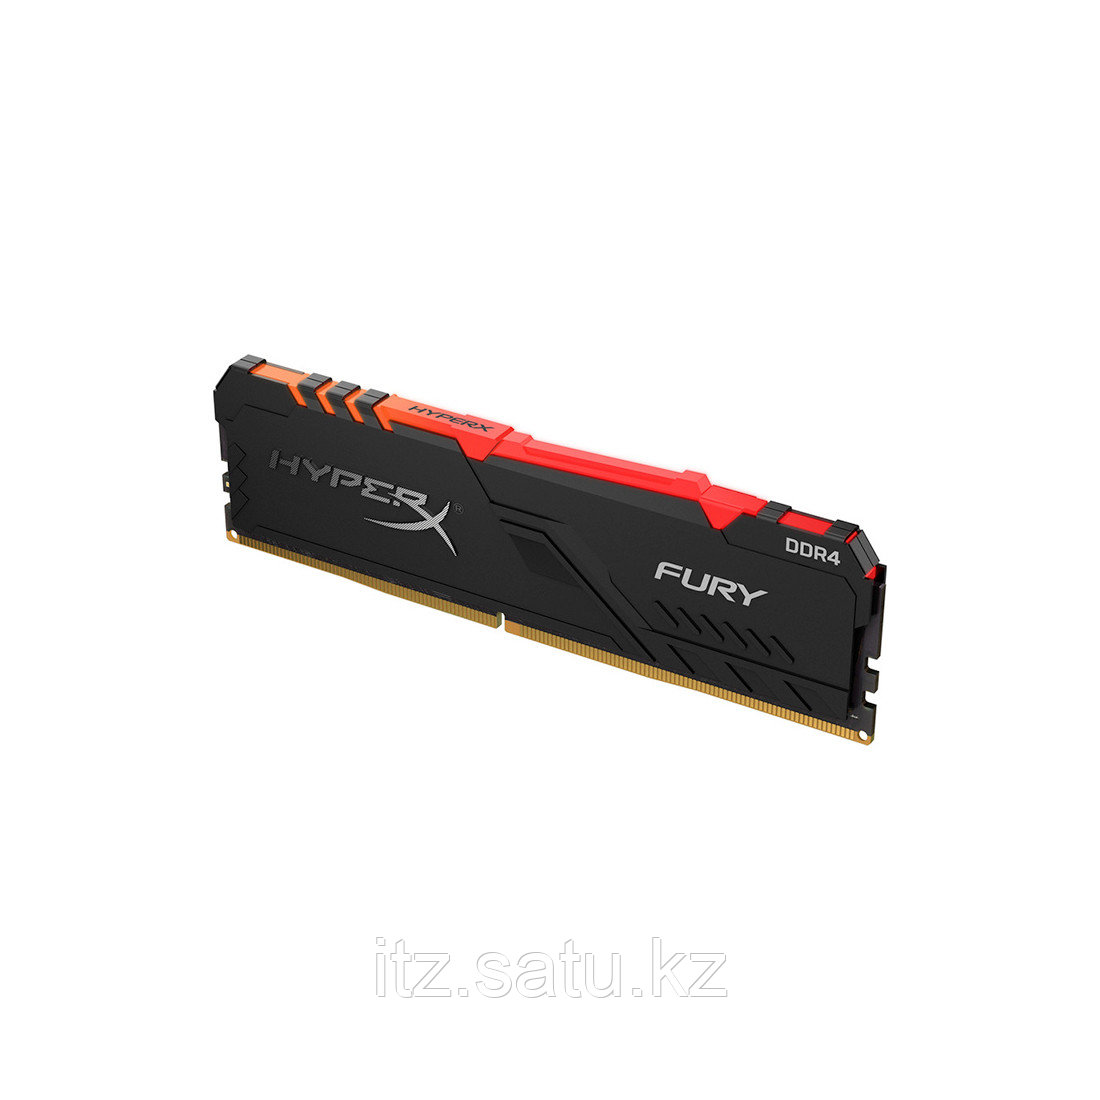 Модуль памяти Kingston HyperX Fury RGB HX426C16FB3A/16 DDR4 16G 2666MHz